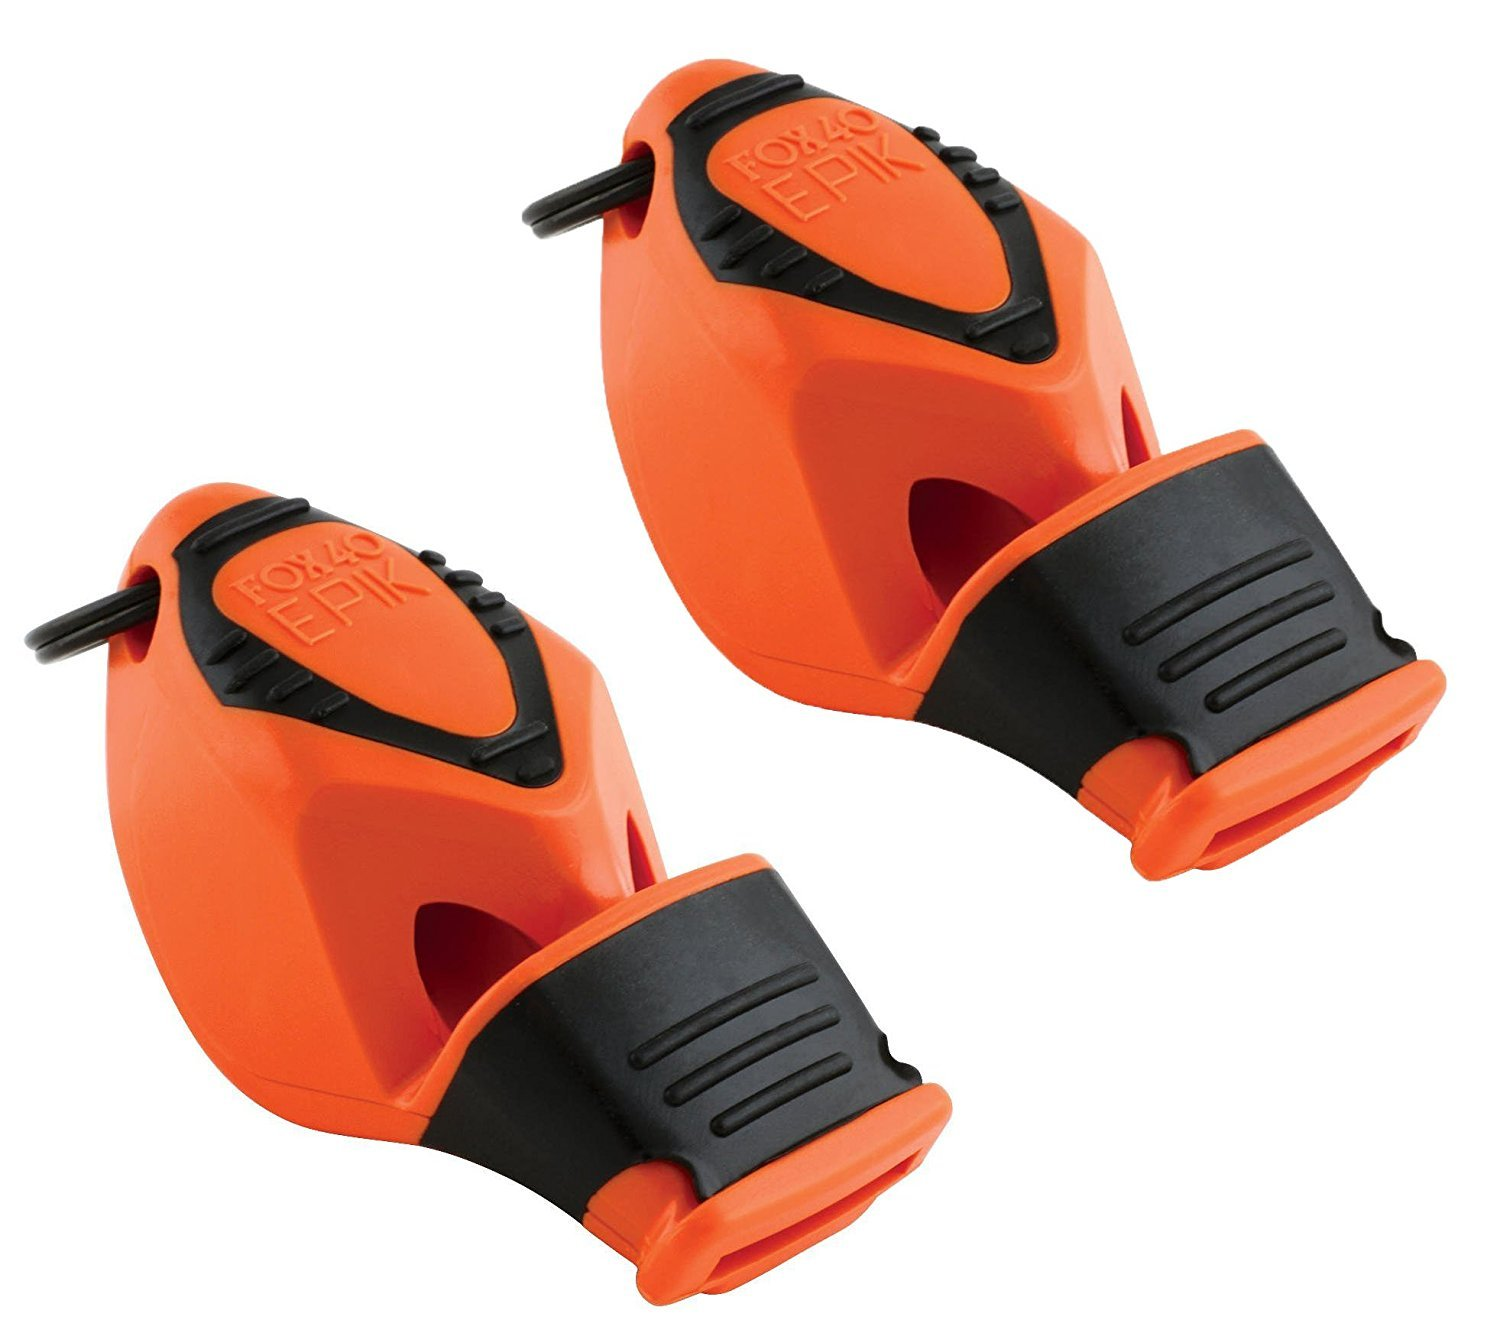 Fox 40 Epik Cushion Mouth Group Sports and Safety Loud Whistle with Lanyard, Orange (2 Pack) by Fox 40